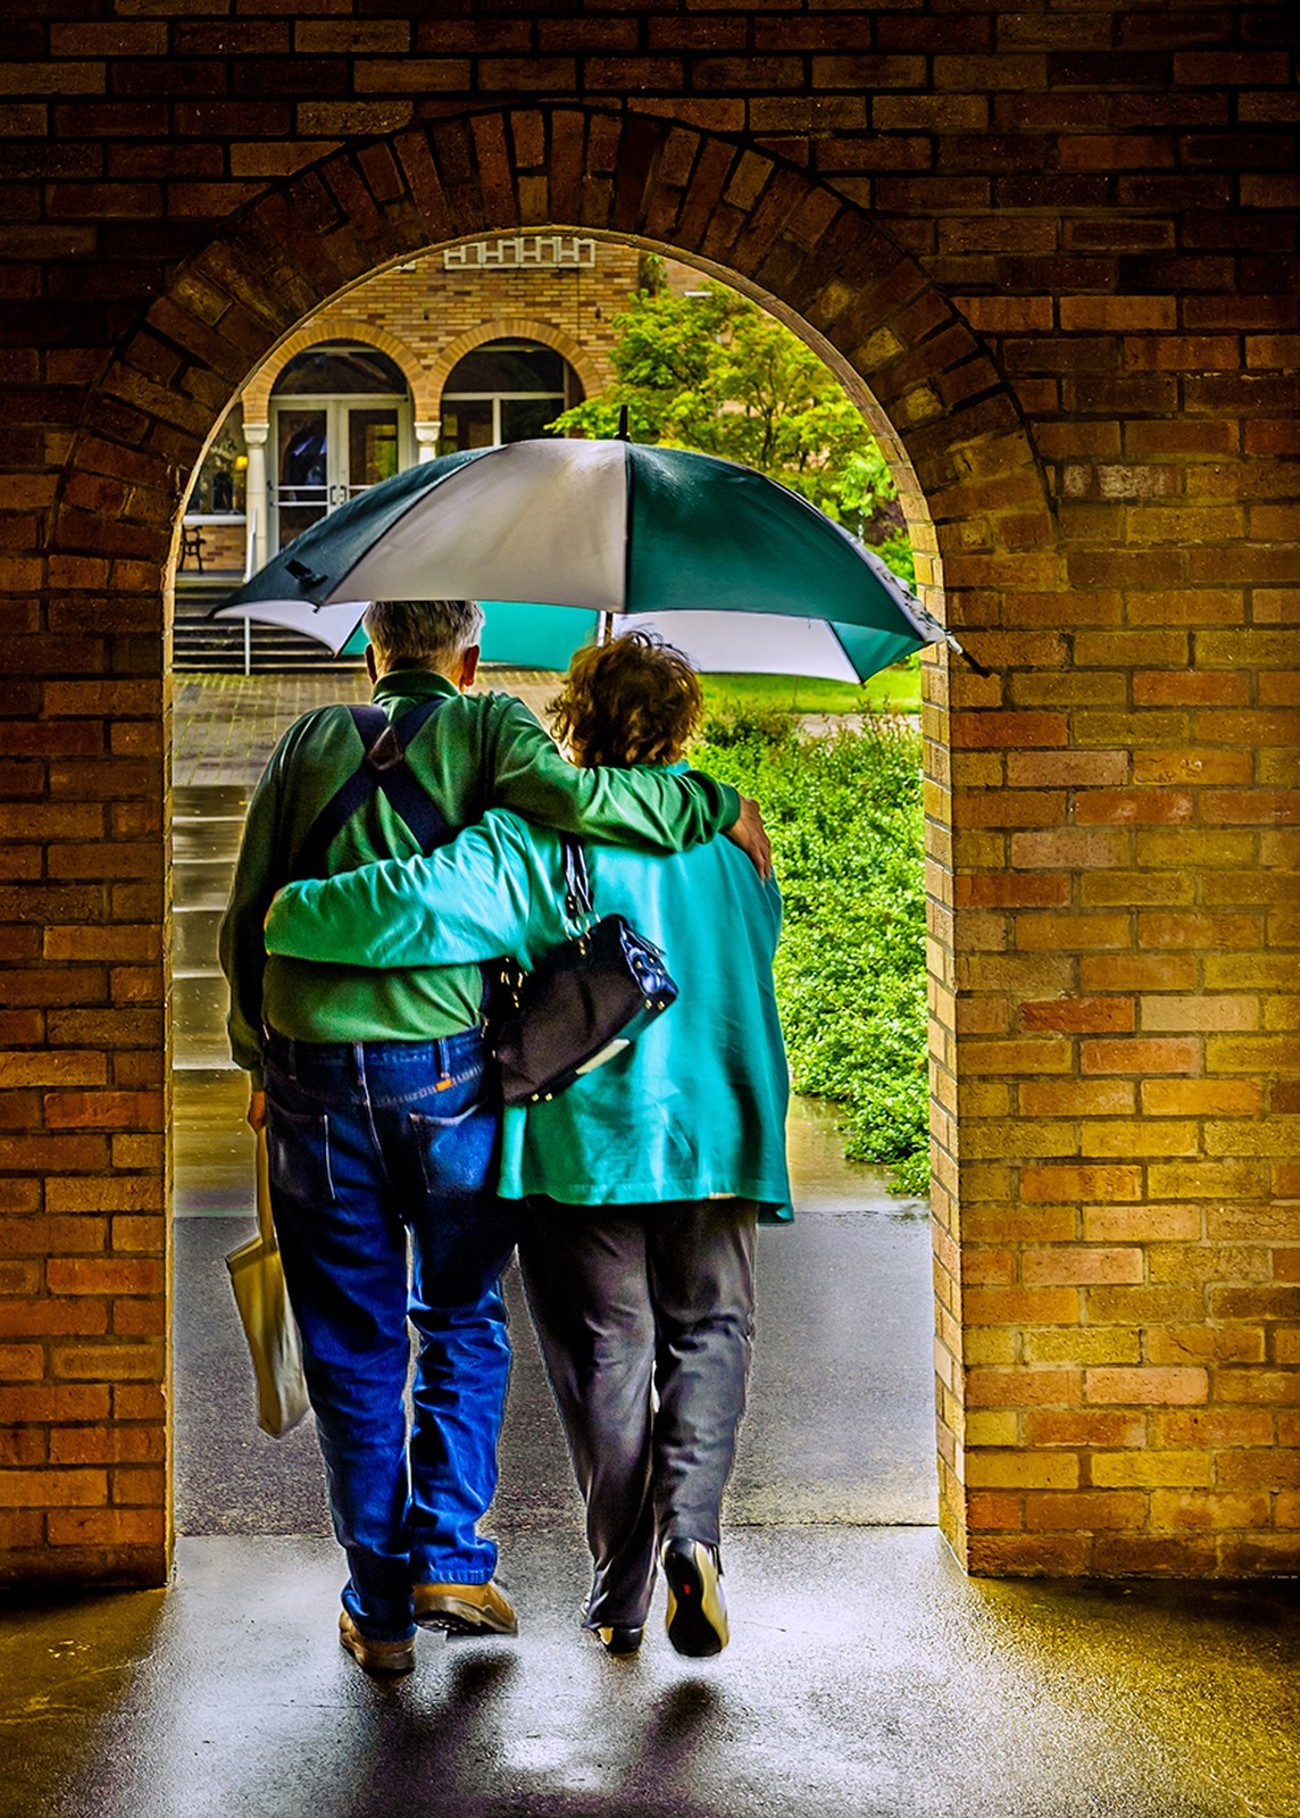 It was captured on a very rainy day at a monastery in Mount Angel, Oregon. It was a rainy day and I love the romantic hug of the older couple as they exited the sheltered walkway into the rain. It was photographed using a Nikon D700 ISO 400, f8 150 of a second. A Nikkor 24-70 f2.8 lens was used at 55mm.